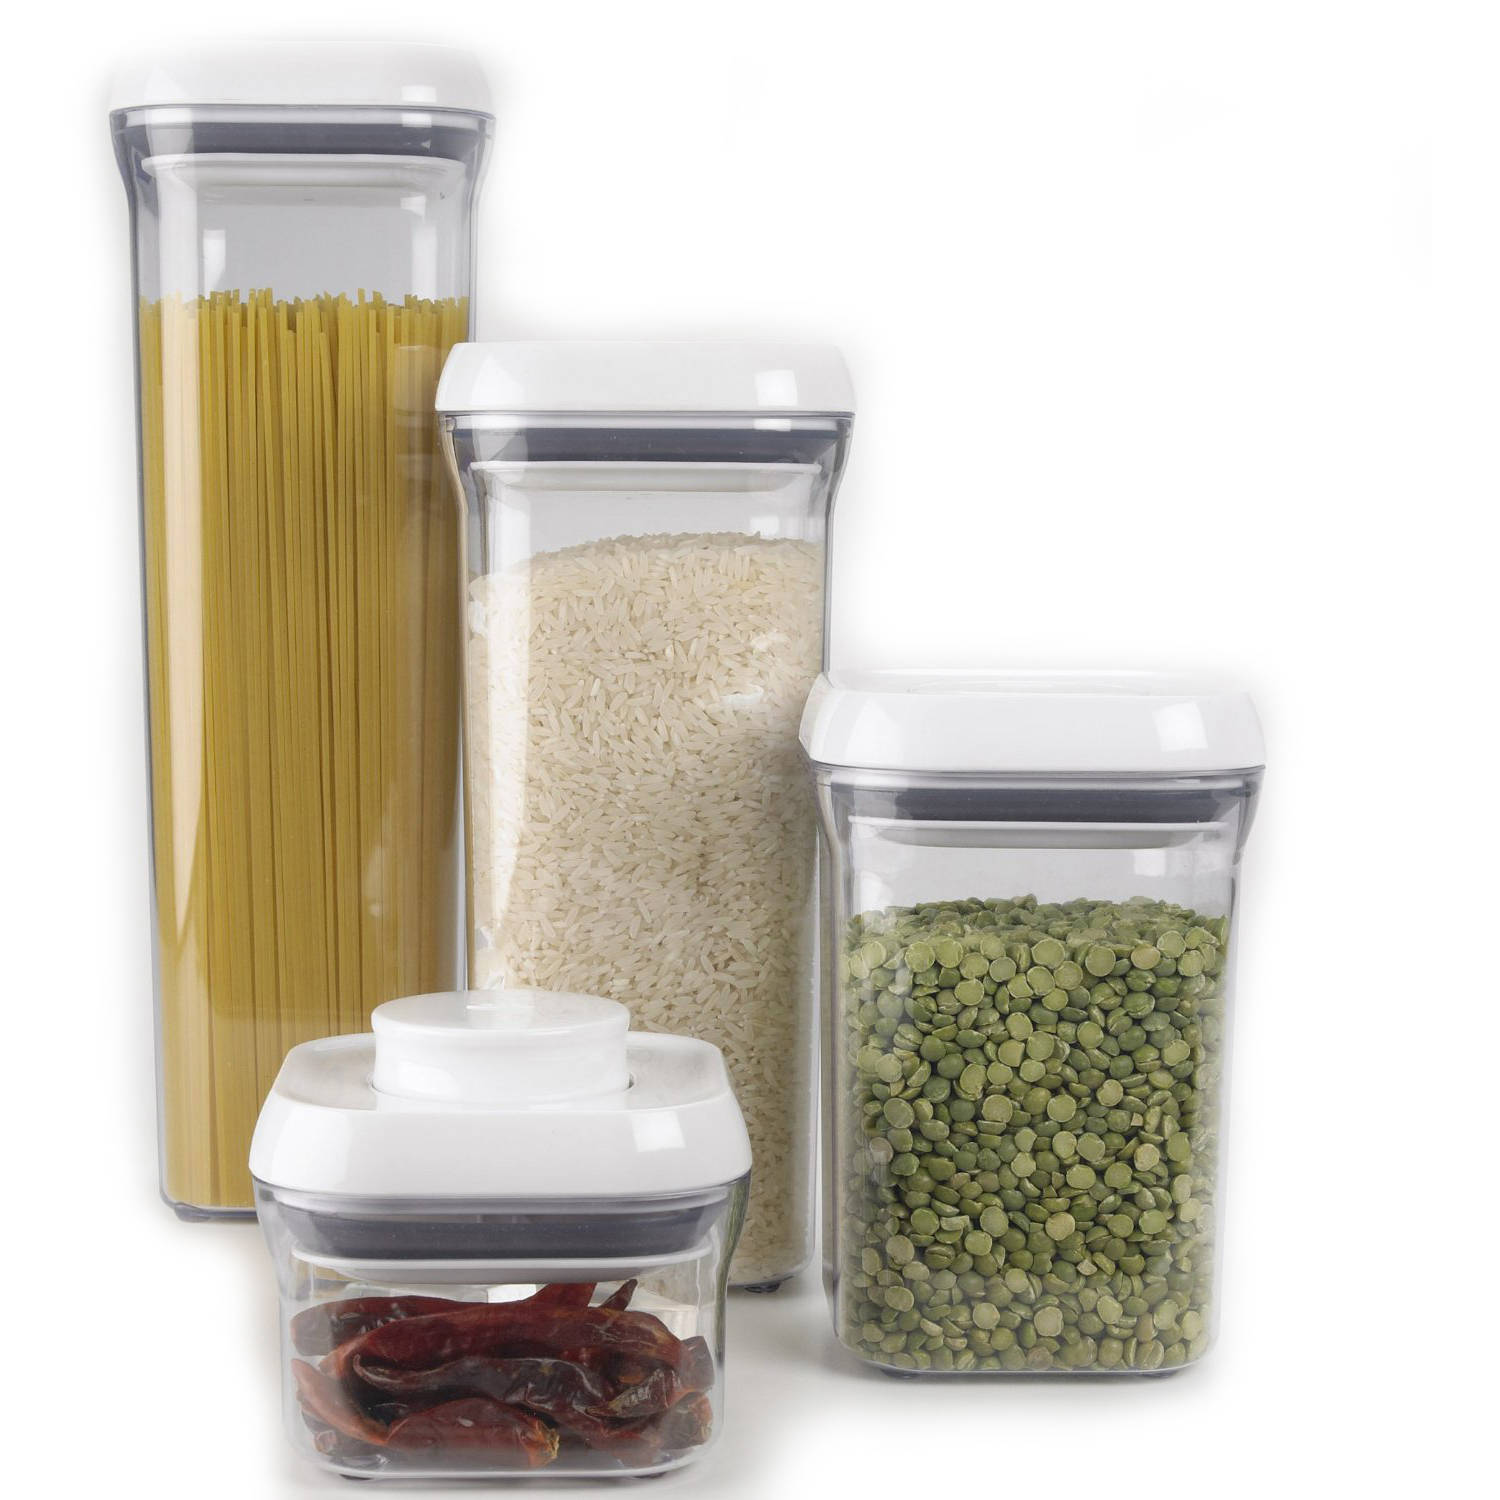 oxo 5piece good grips pop container set white image 2 of 5